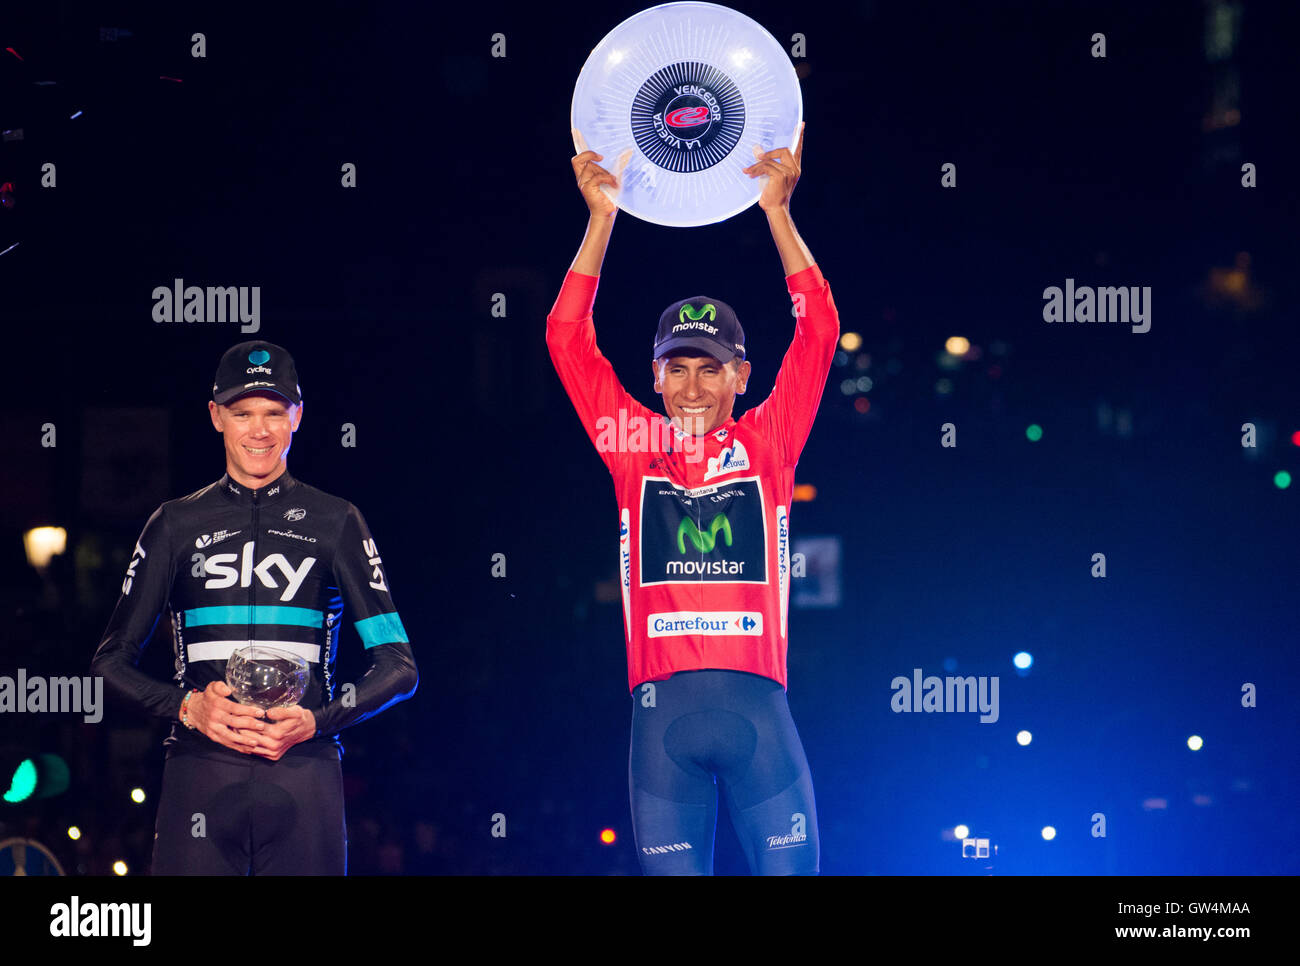 Madrid, Spain. 11th September, 2016. Chris Froome (2nd), Nairo Quintana (1st) at final podium of the 21st stage - Stock Image